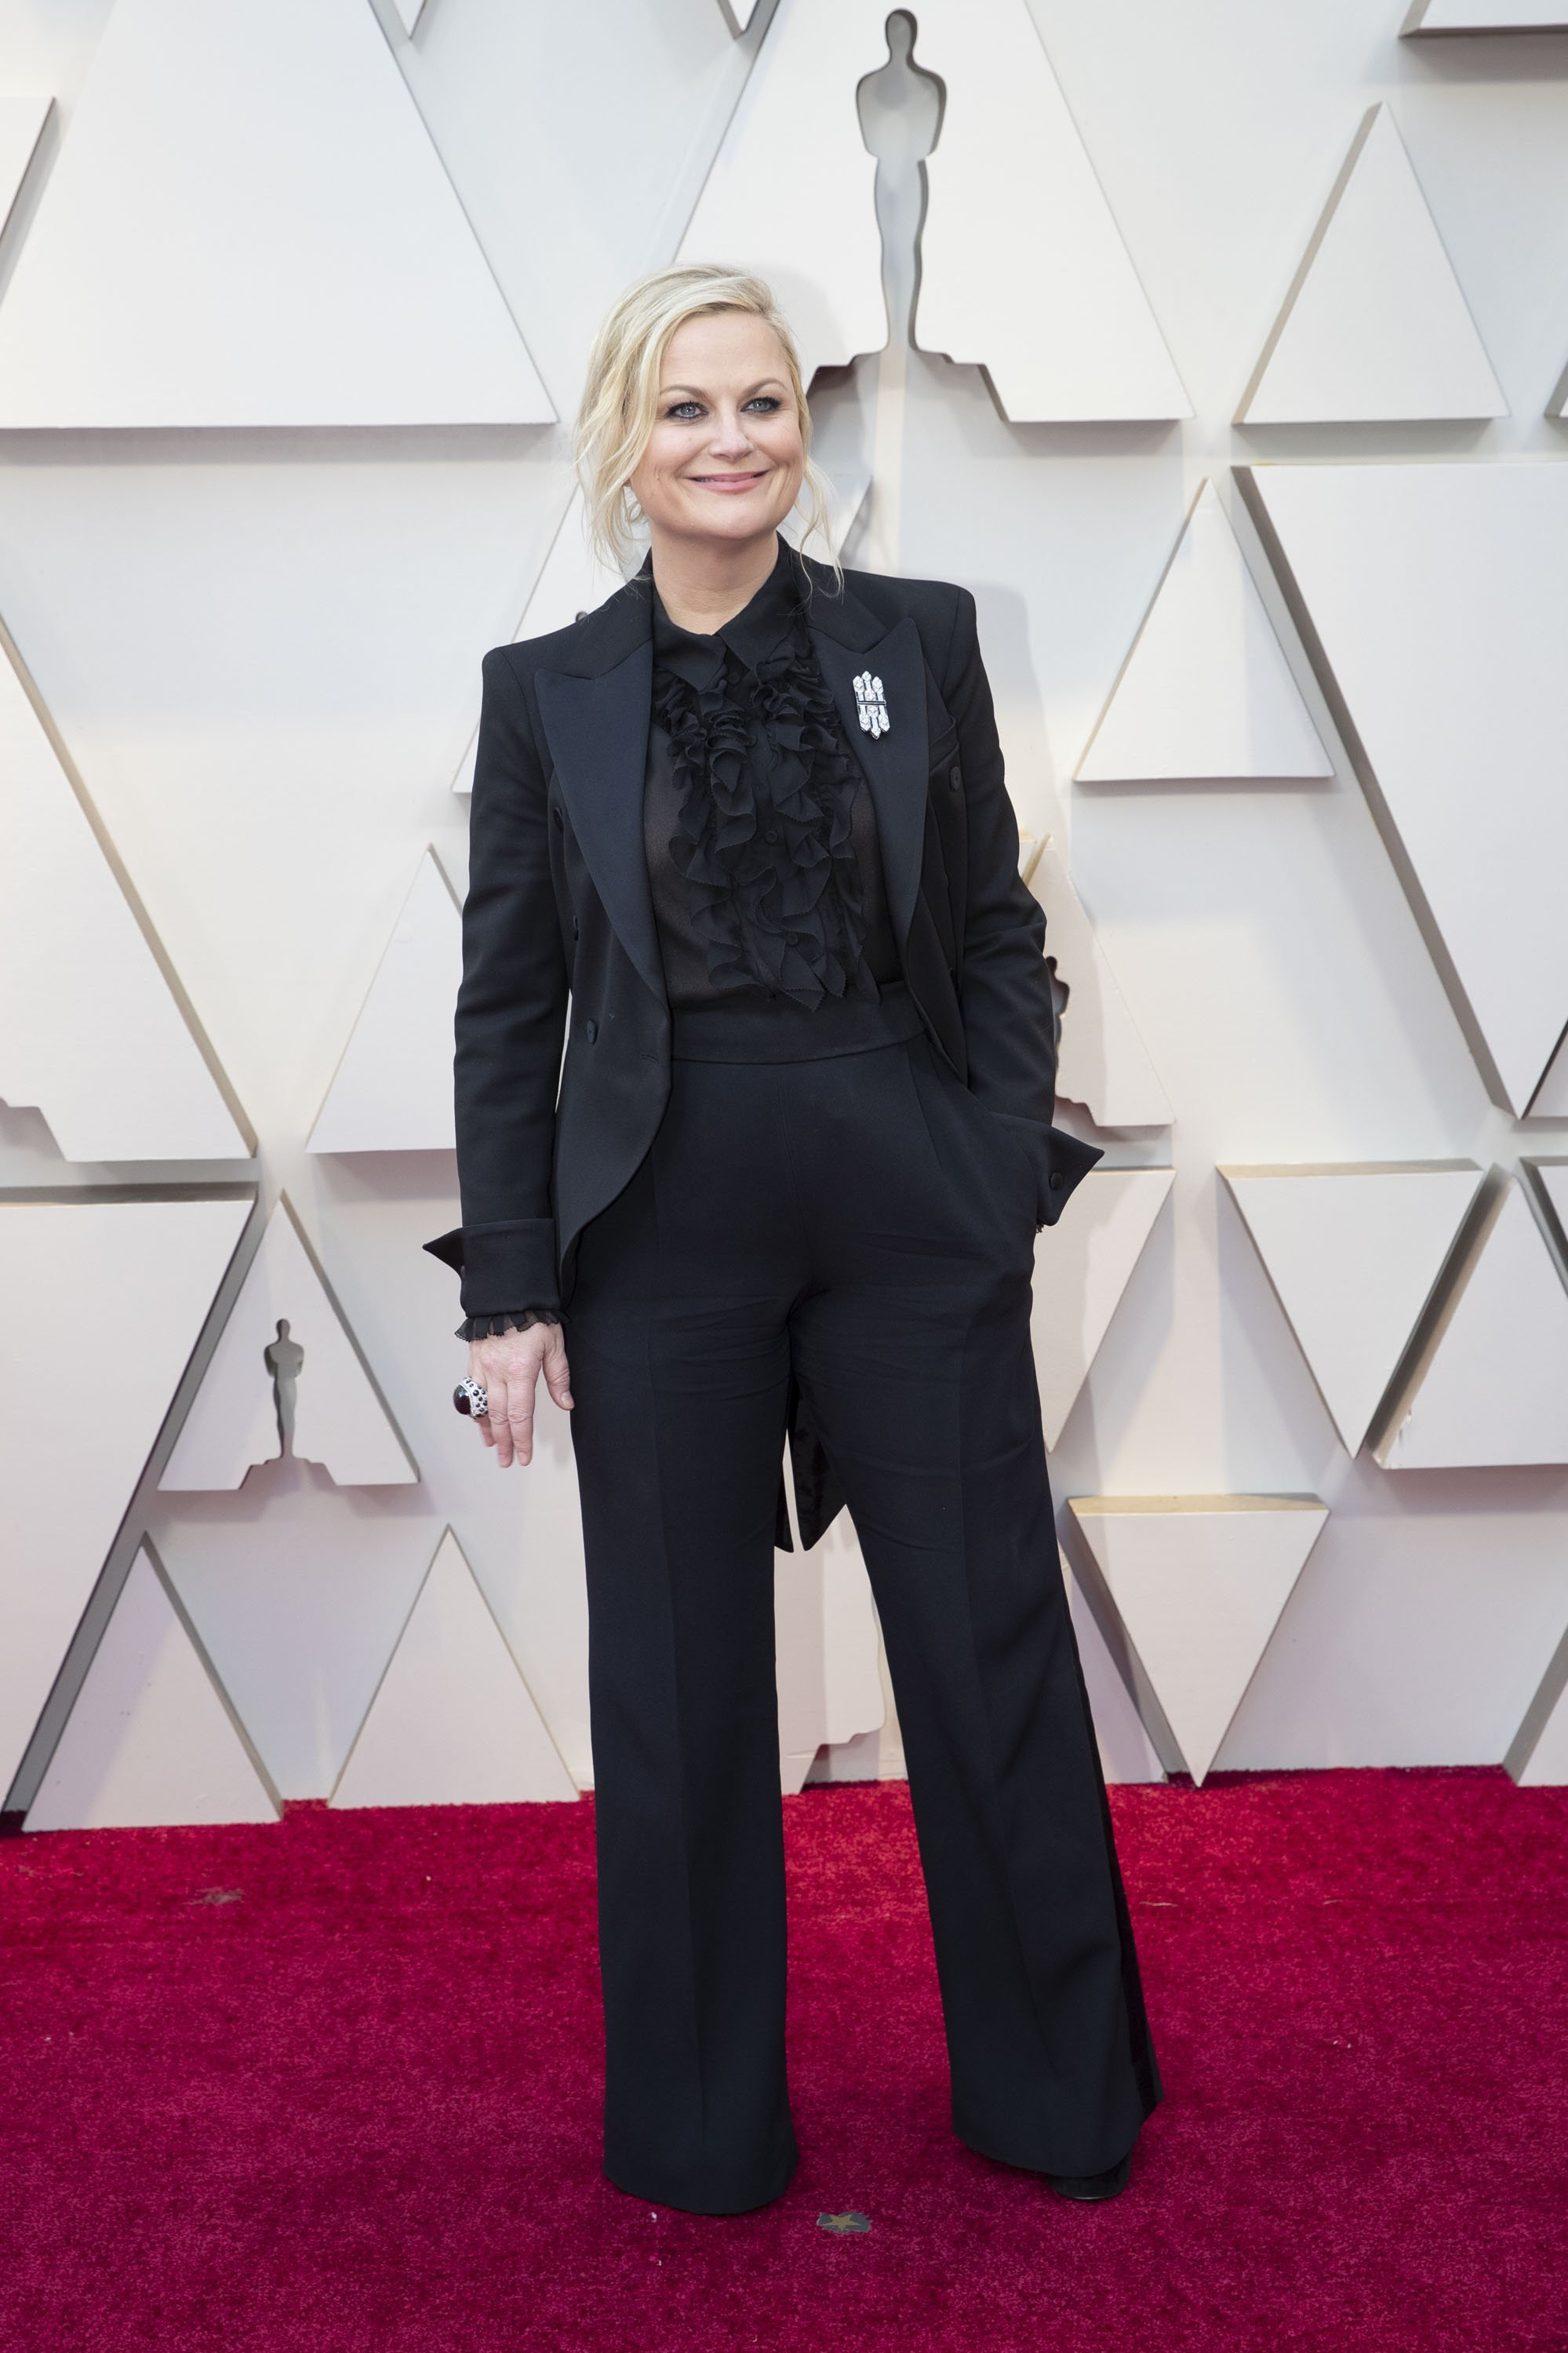 Amy Poehler: Red Carpet from the The 91st Oscar broadcast on Sunday, Feb. 24, 2019, at the Dolby Theatre.